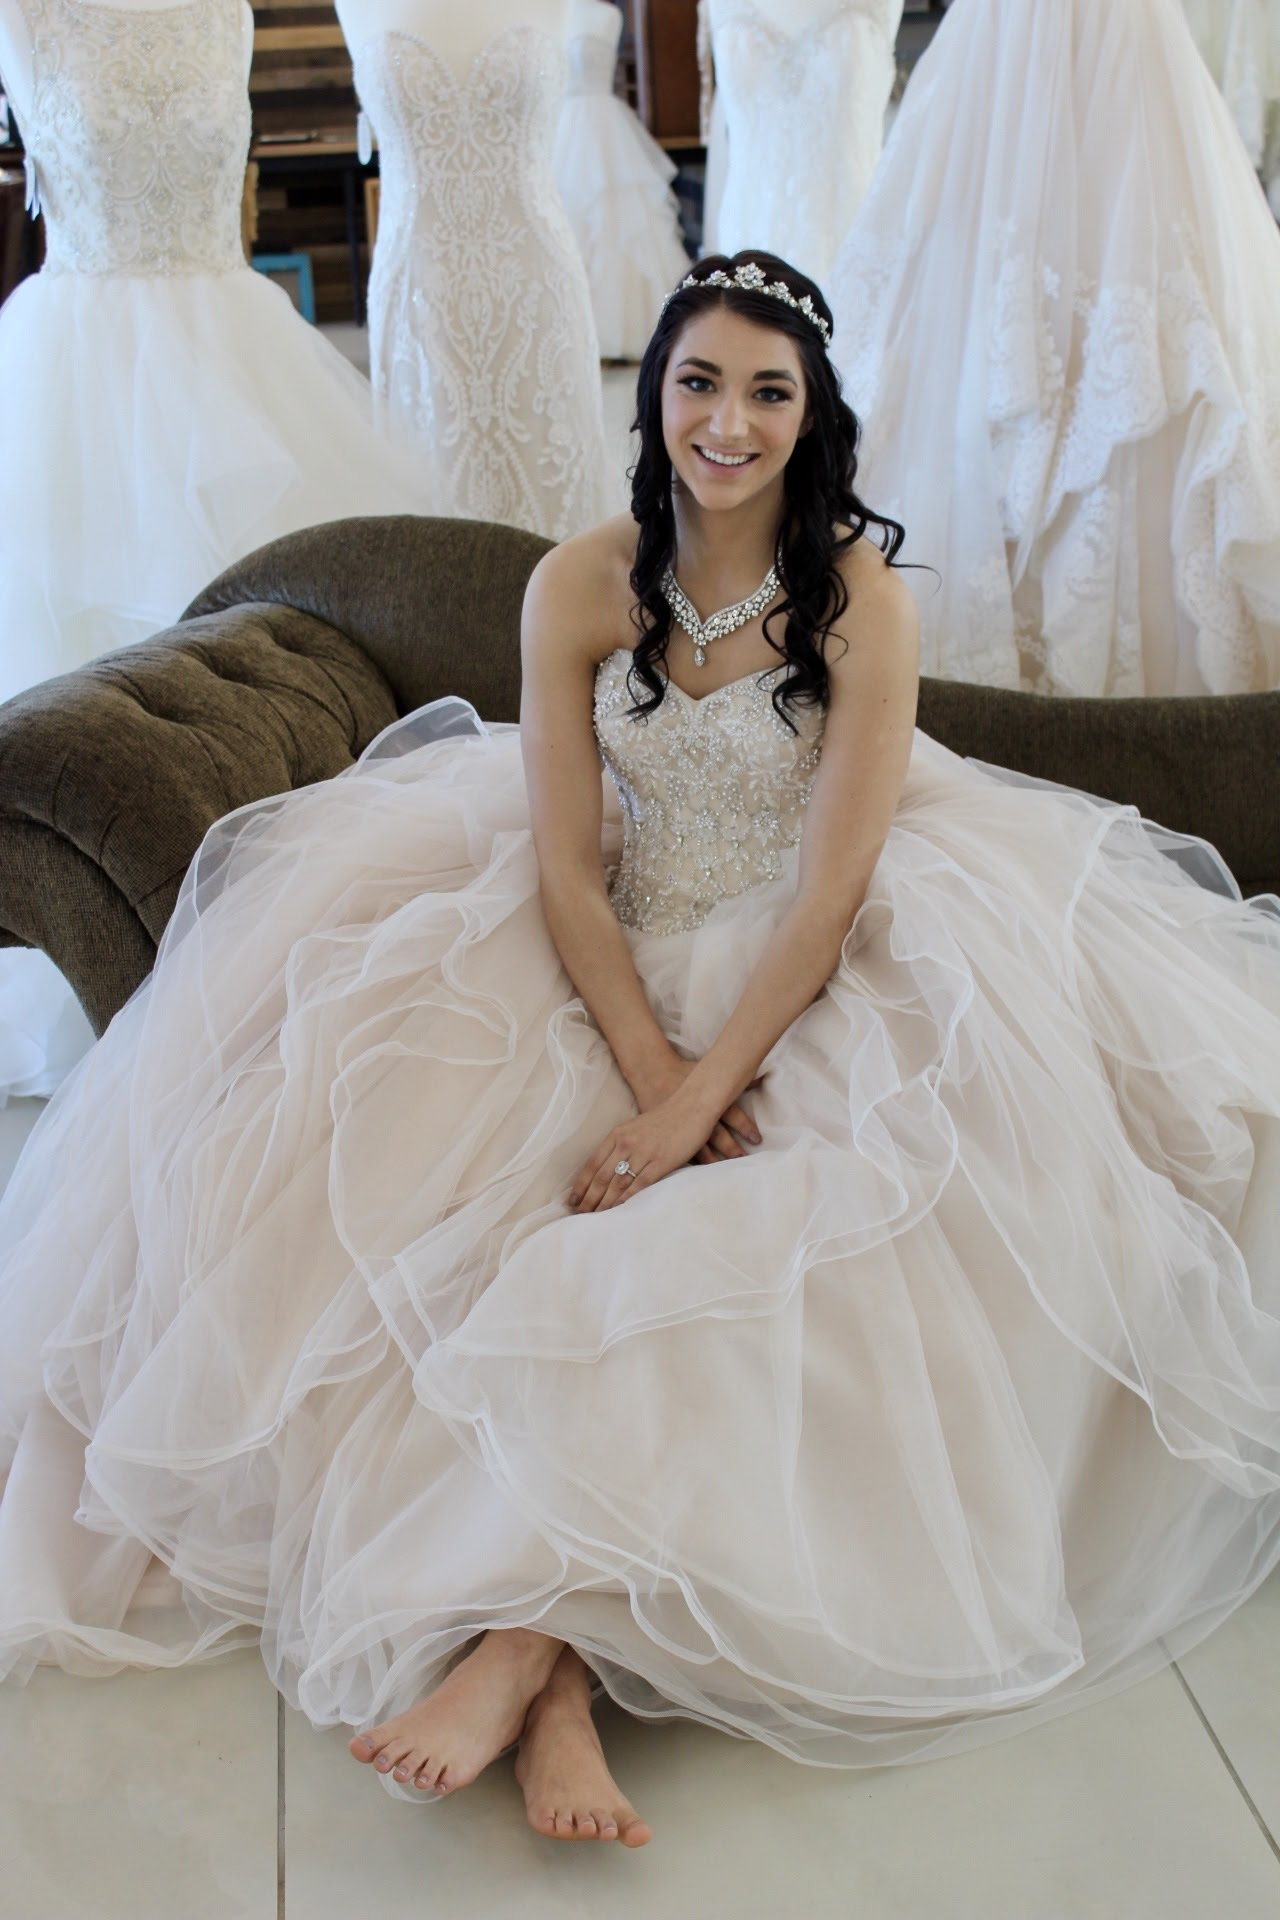 Bridal Formal Wear Tuxedos And Wedding Services Missoula Mt